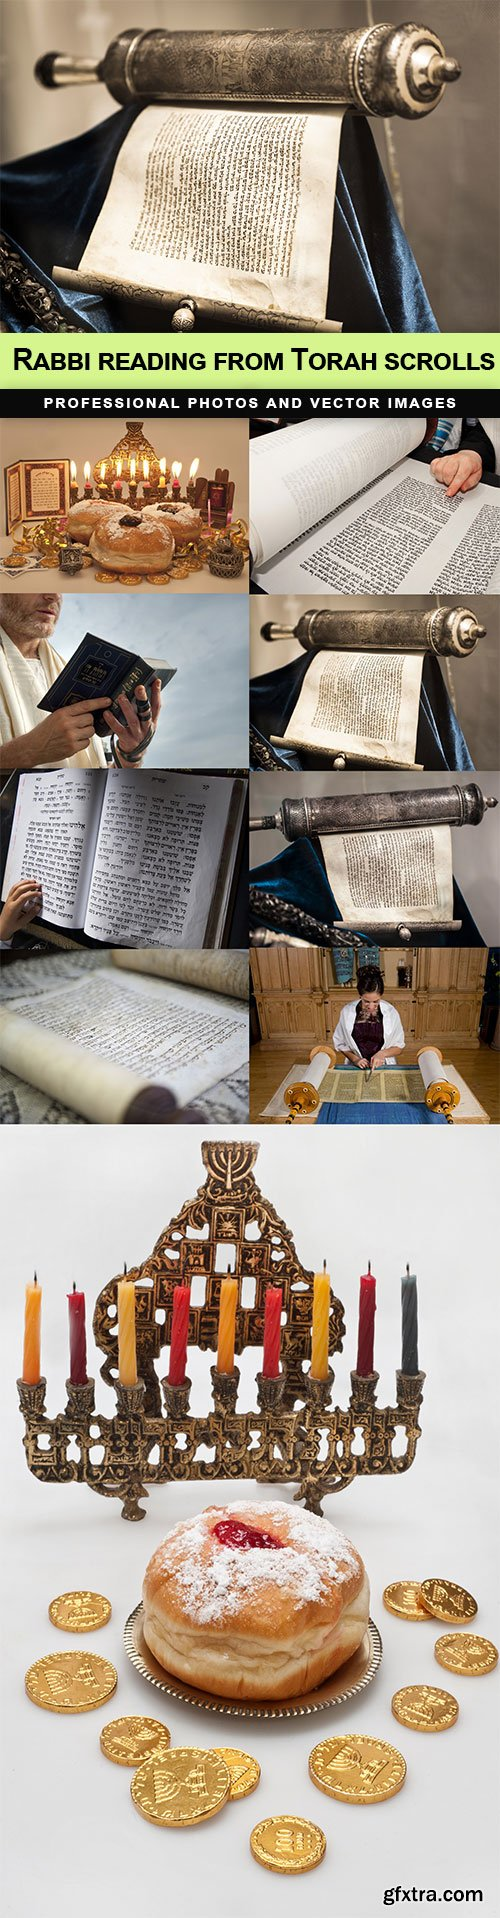 Rabbi reading from Torah scrolls